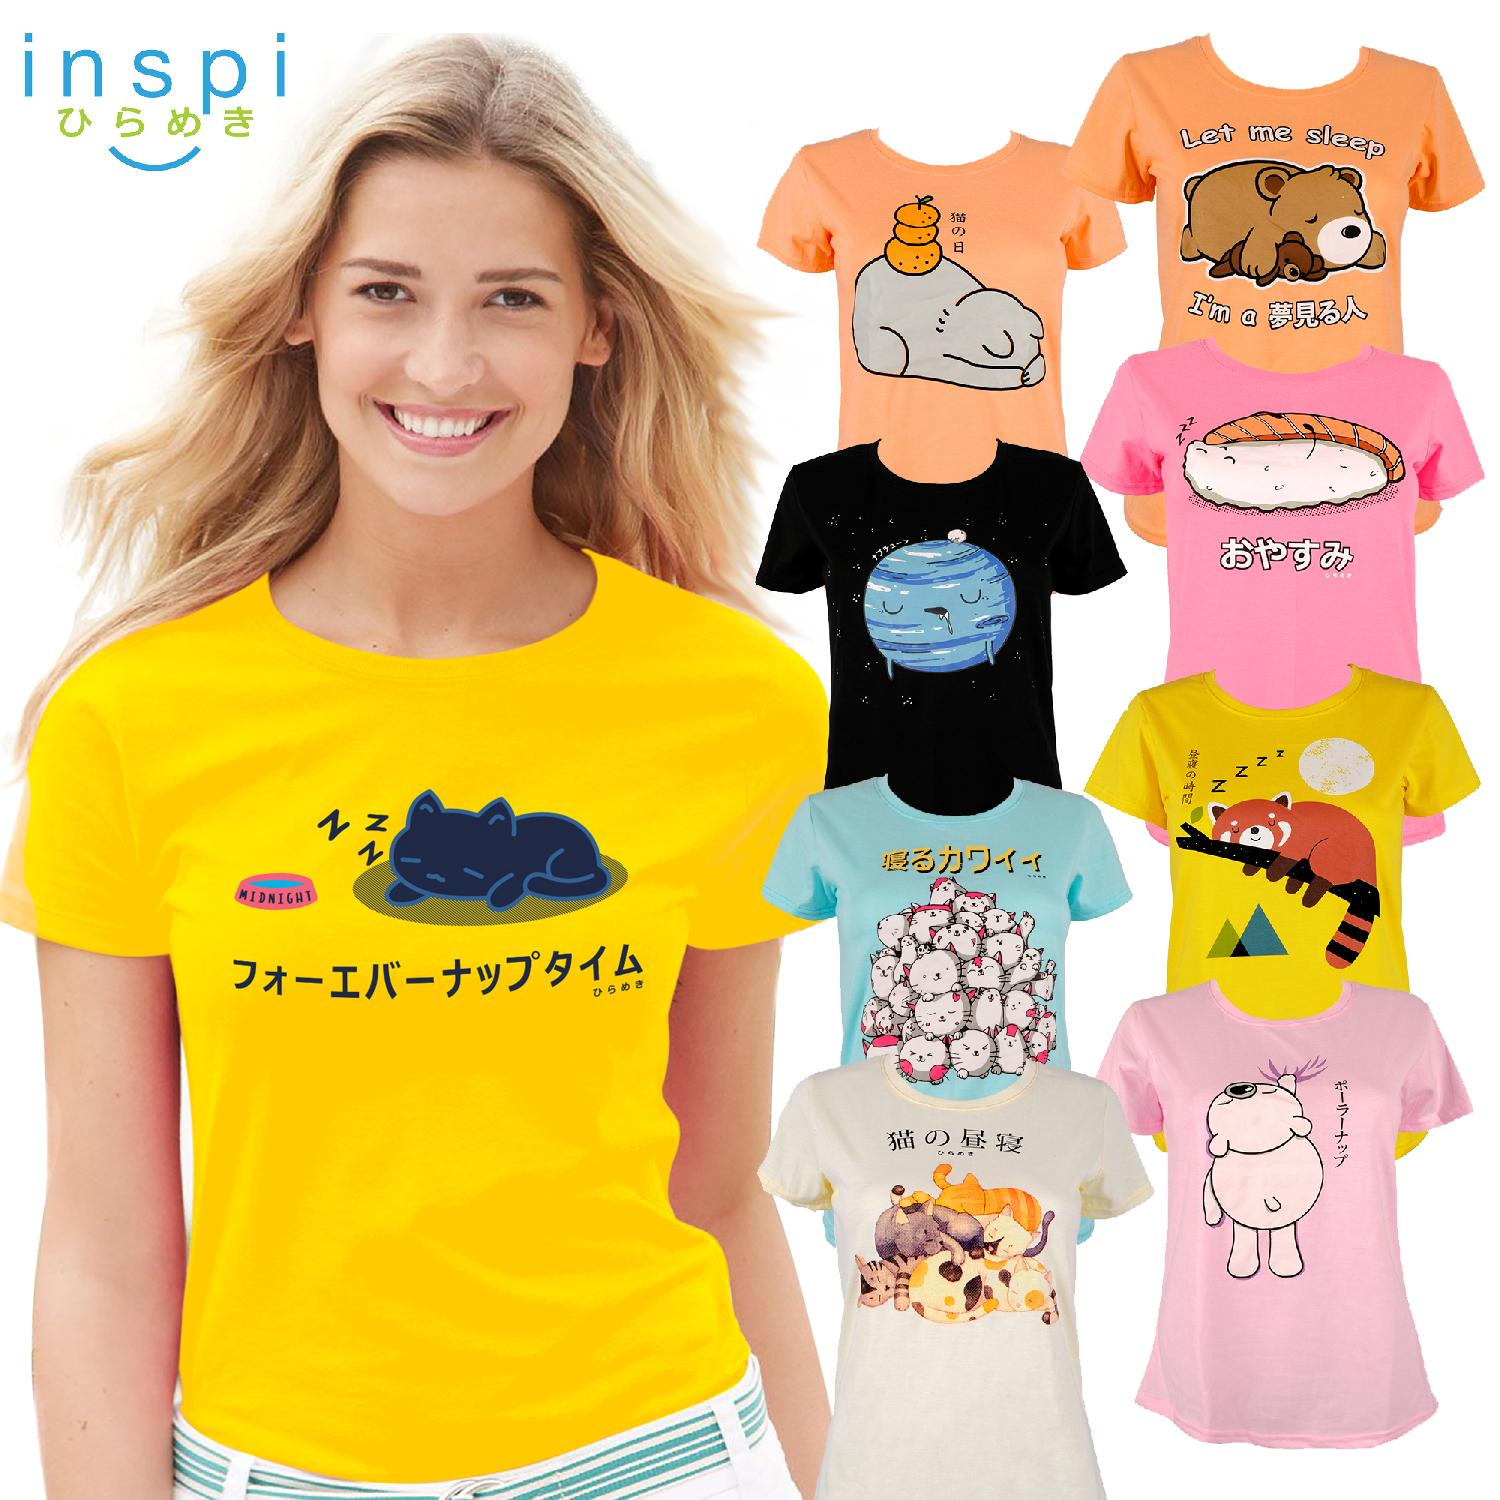 2f0412455 INSPI Tees Ladies Nap Collection tshirt printed graphic tee Ladies t shirt  shirts women tshirts for